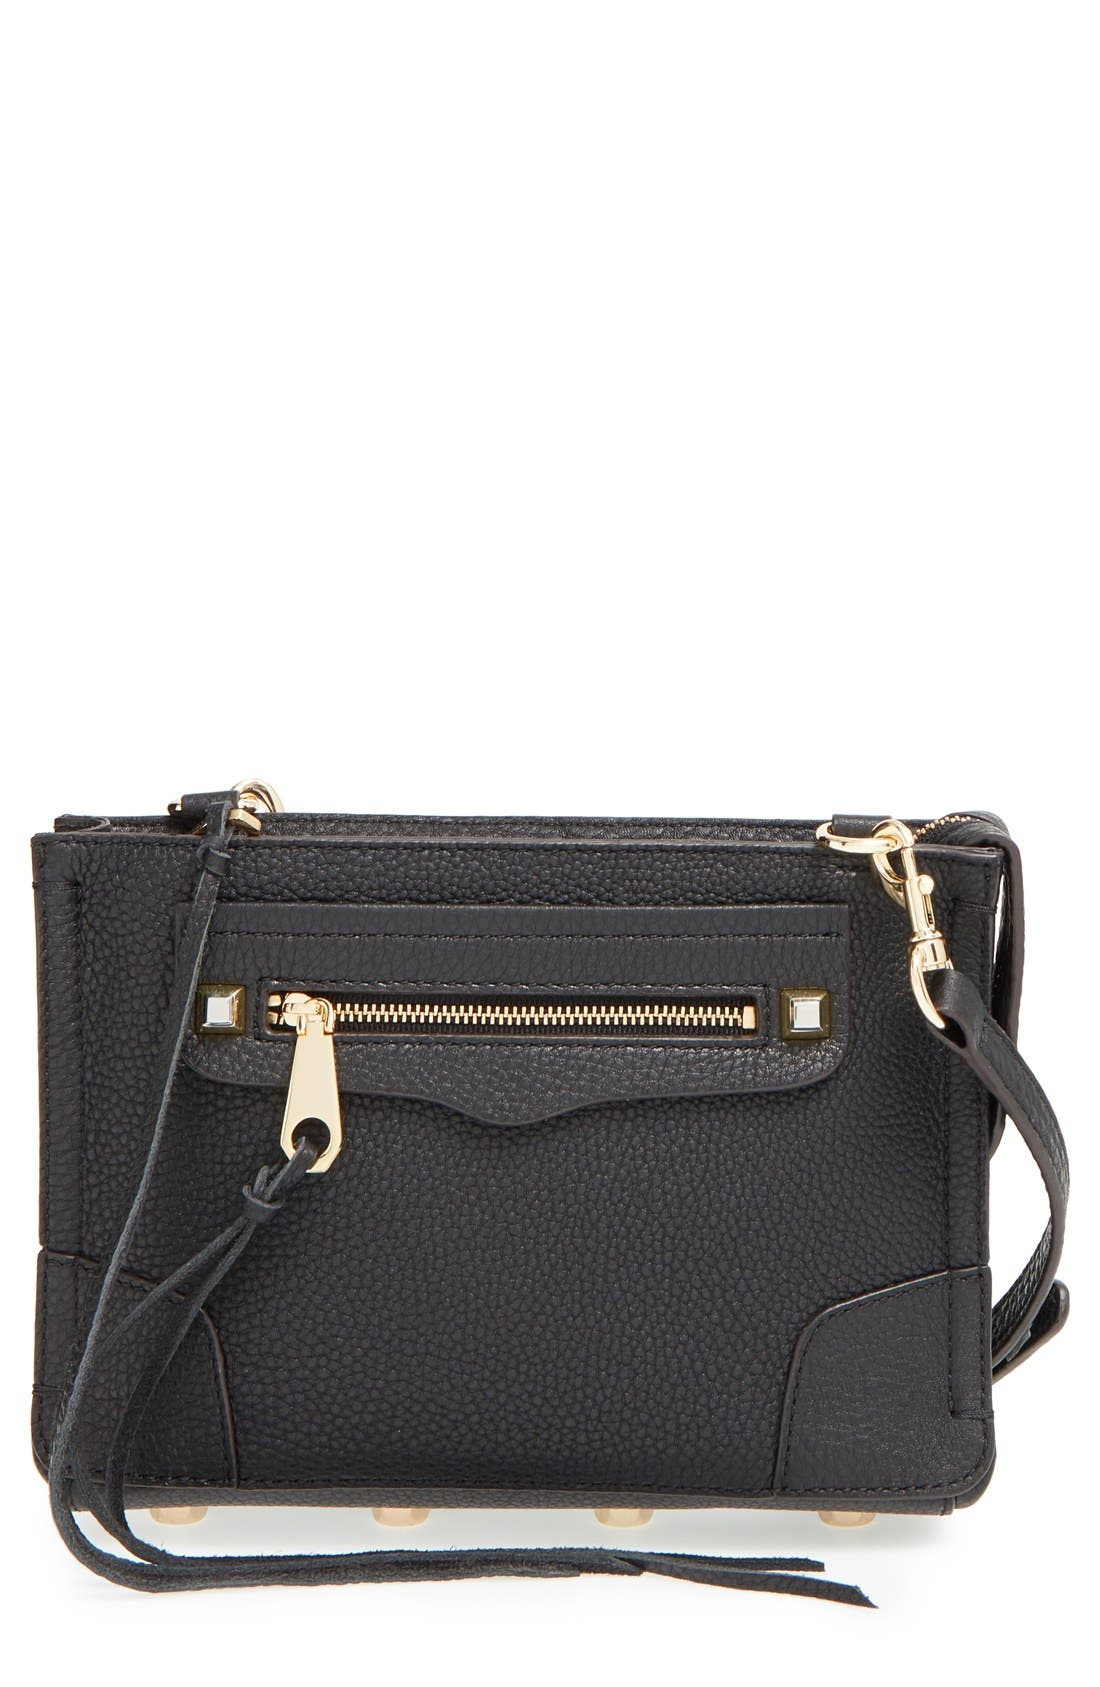 'Regan' Crossbody Bag,                             Main thumbnail 1, color,                             001